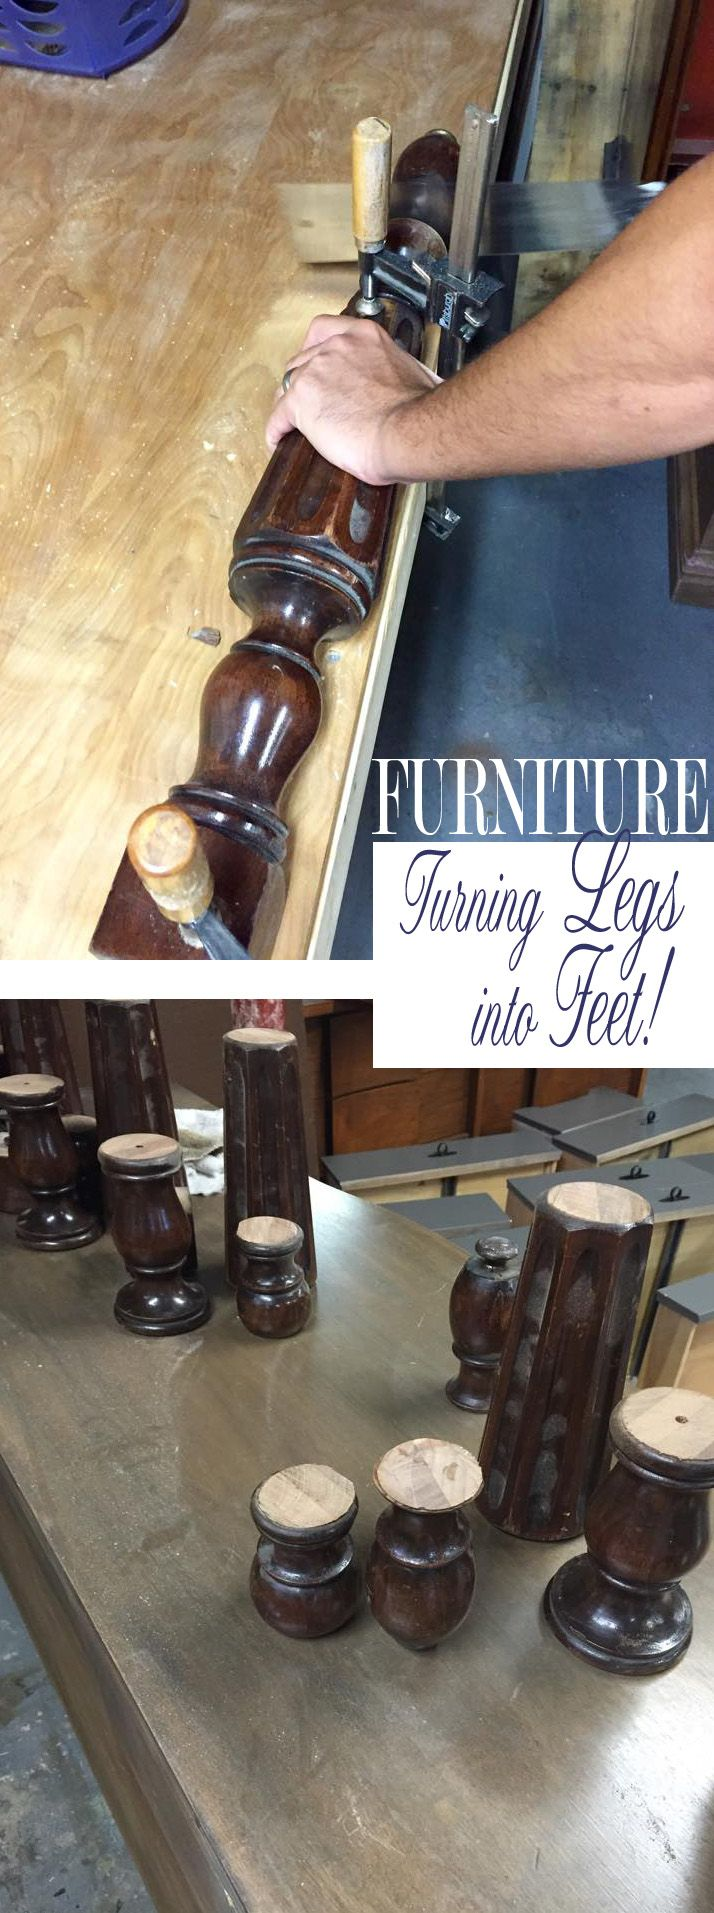 I LOVE this furniture up-cycling idea! Use Old Furniture Legs to make New Furniture Feet! | QTT Featuring Simple Redesign